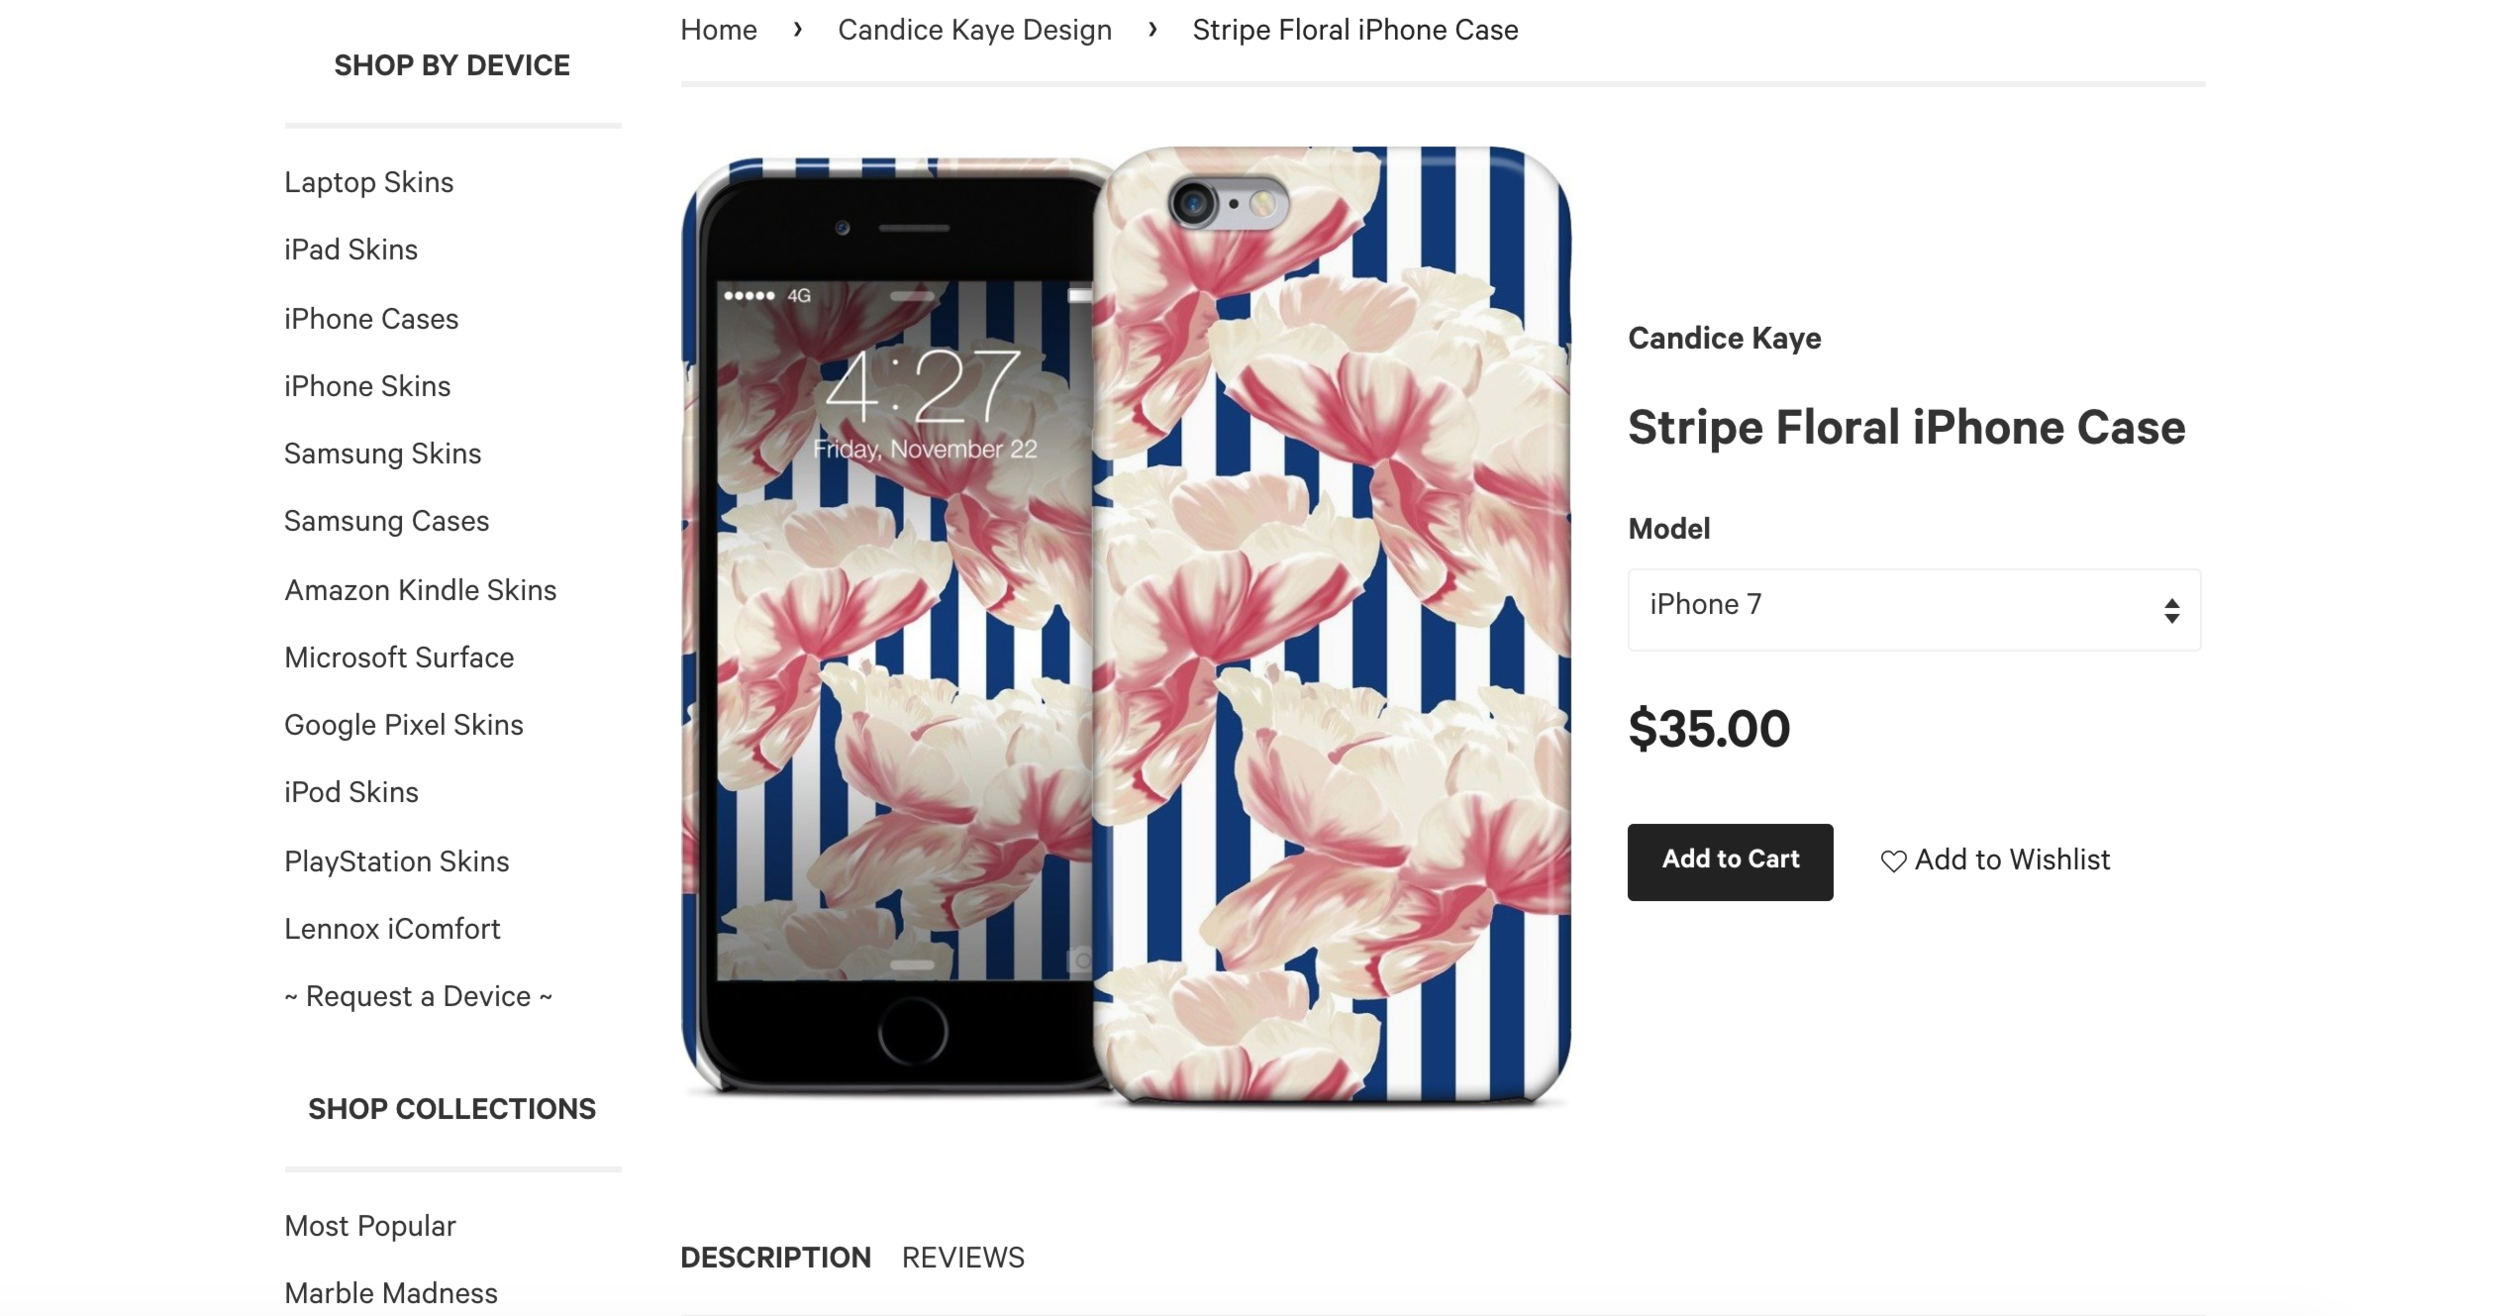 candicekayedesign_floral.png